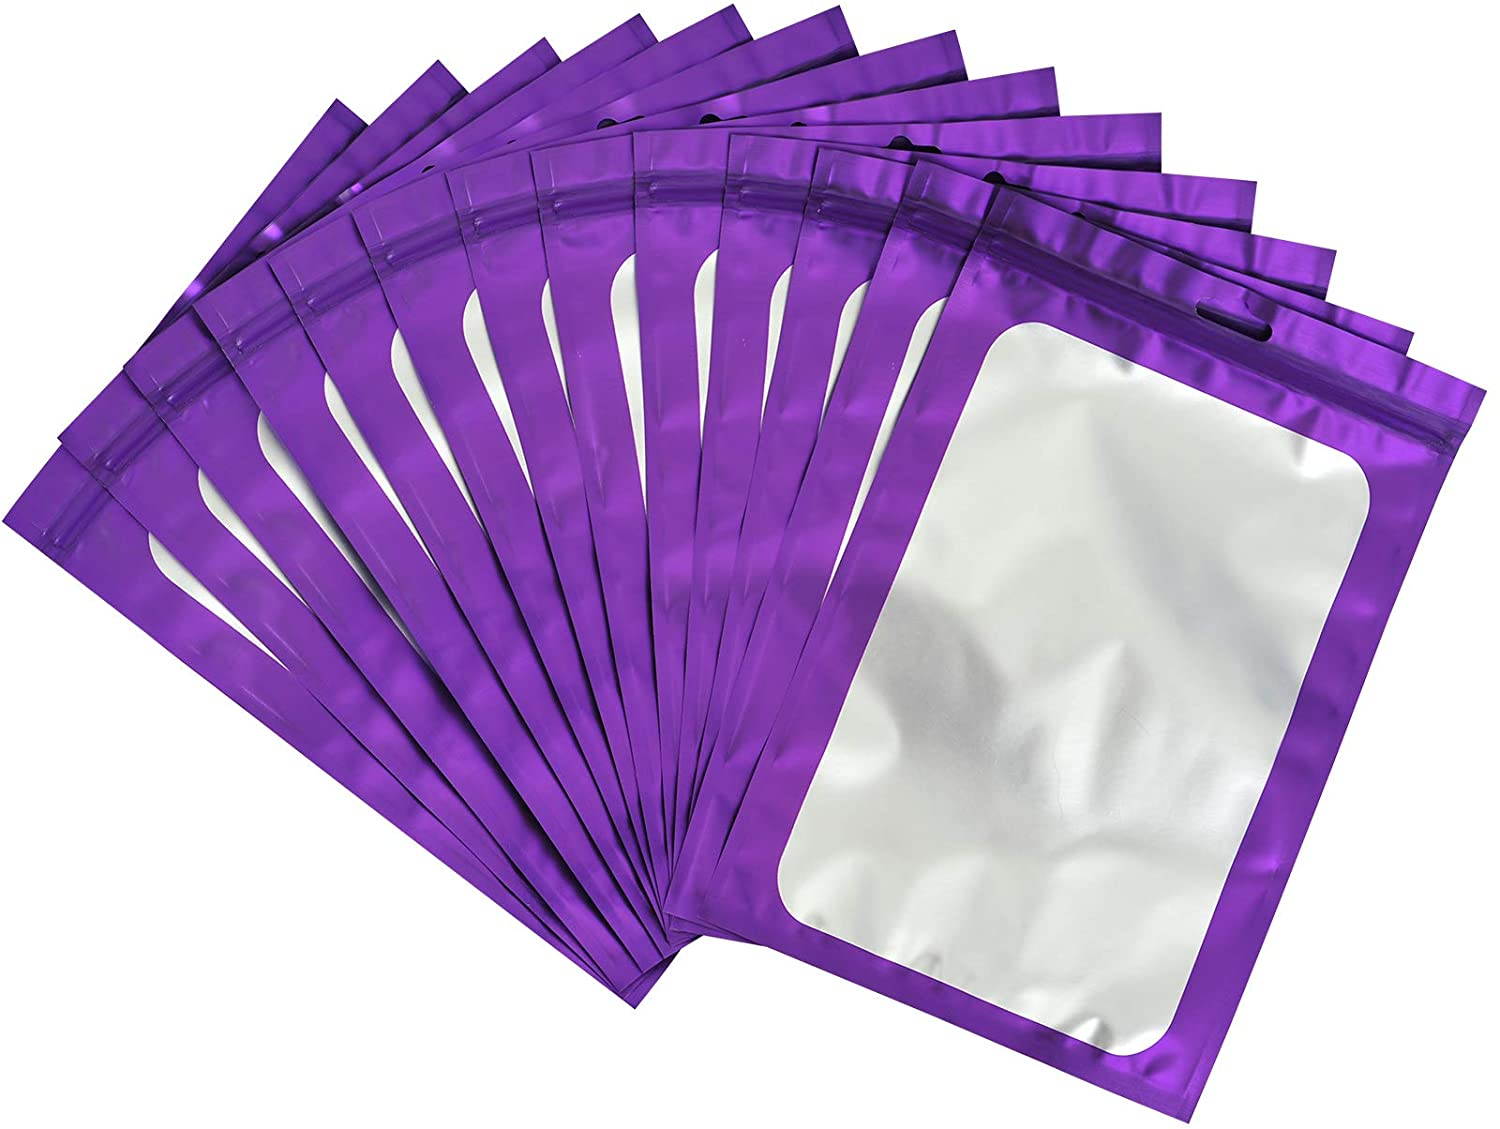 100-pack resealable mylar ziplock bags with front window Smell Proof bag packaging pouch bag for lip gloss eyelash cookies sample food jewelry electronics |flat|cute|(Purple, 3.14×5.11 inches)